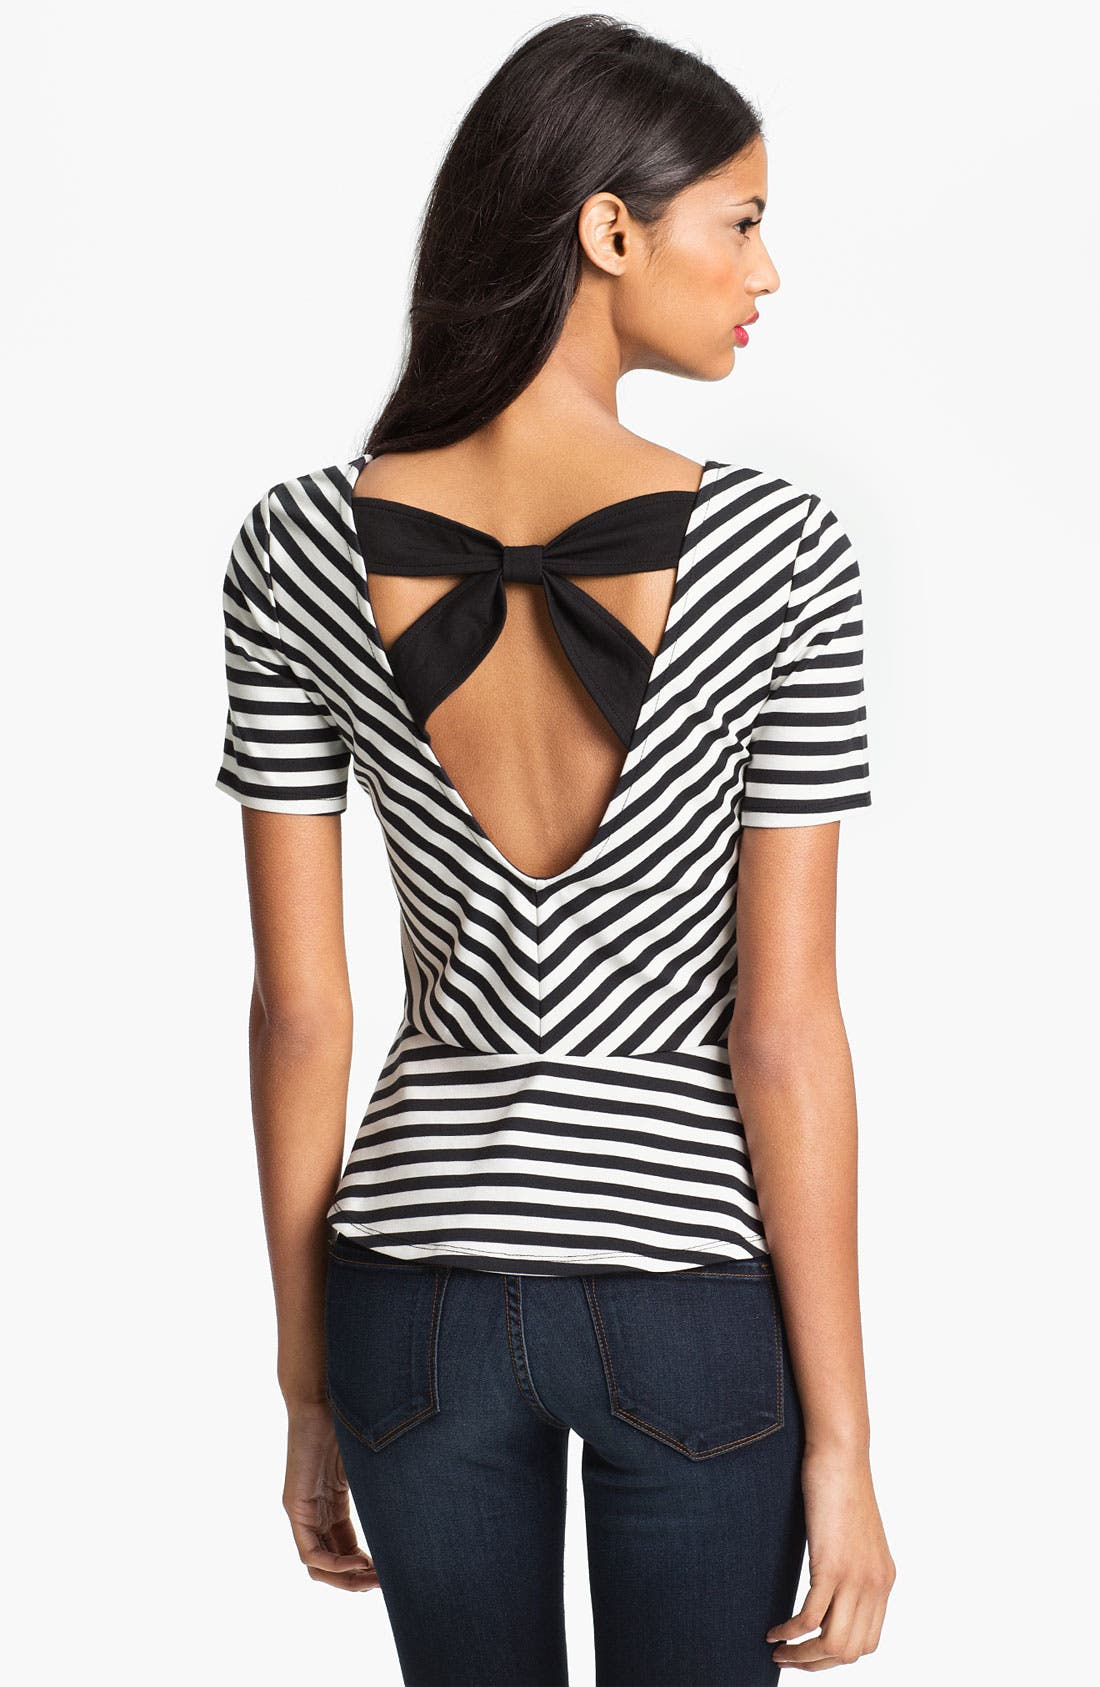 Alternate Image 1 Selected - Jessica Simpson 'Margeaux' Peplum Top (Online Exclusive)